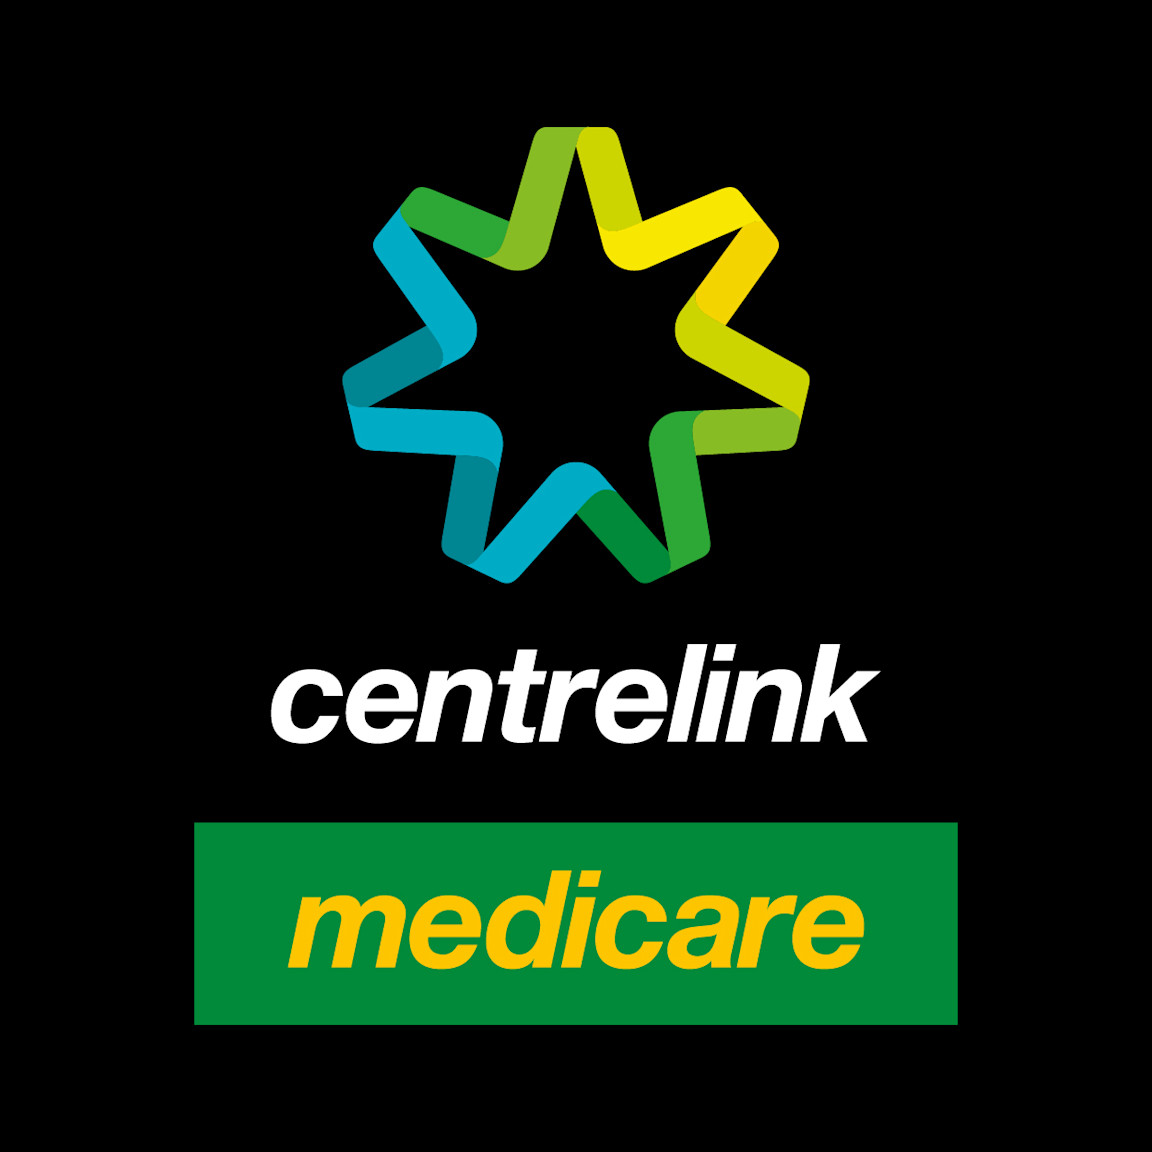 Centrelink at Westfield Fountain Gate